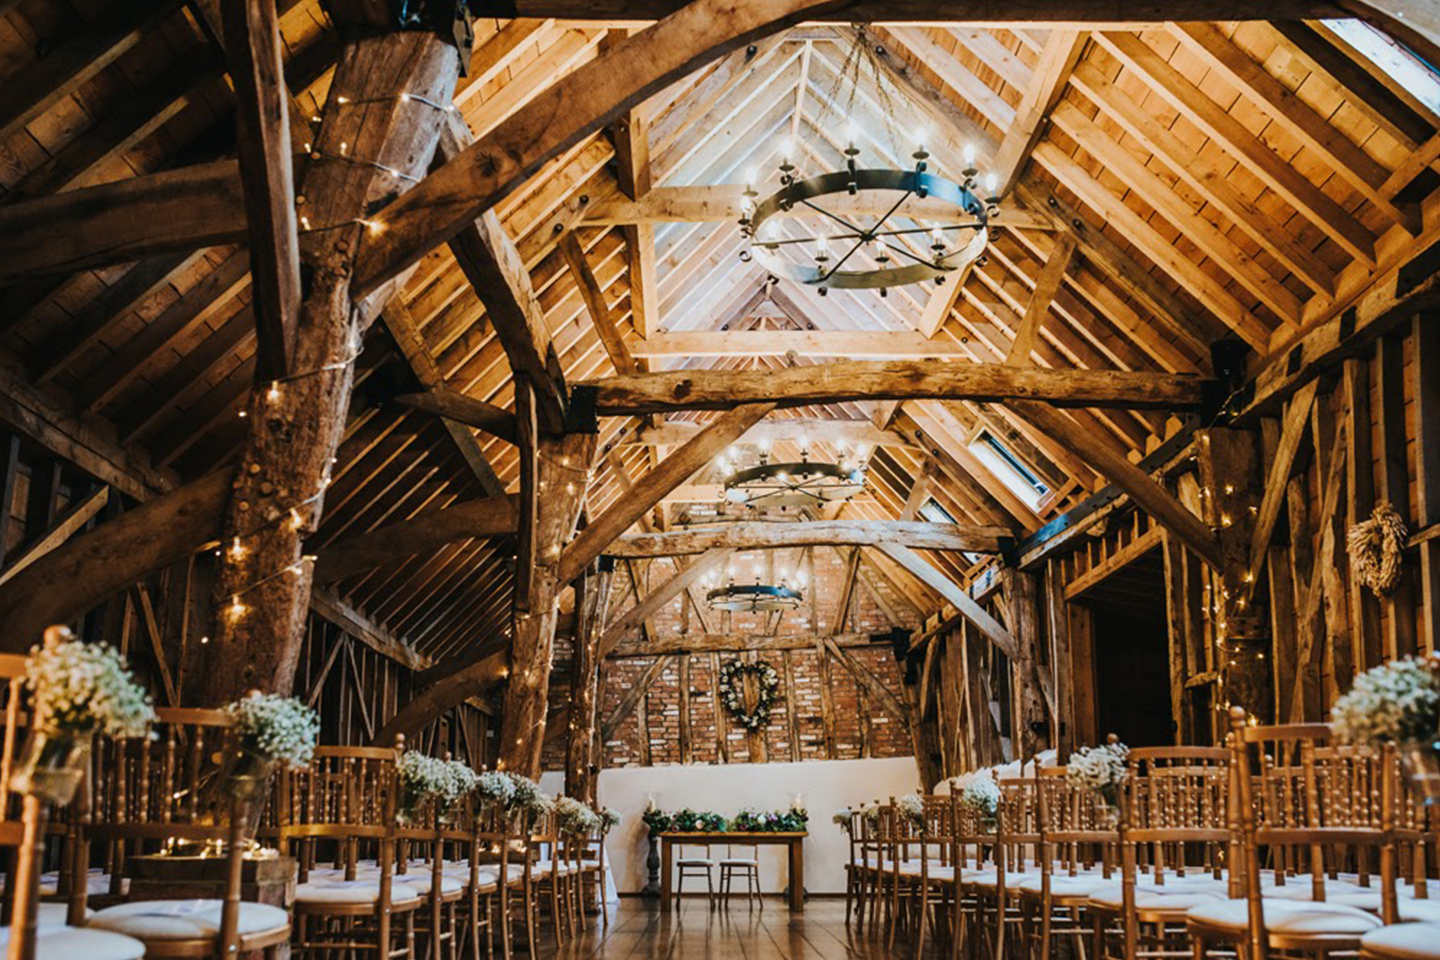 The Rickety Barn at Bassmead Manor Barns is set up for a rustic wedding ceremony